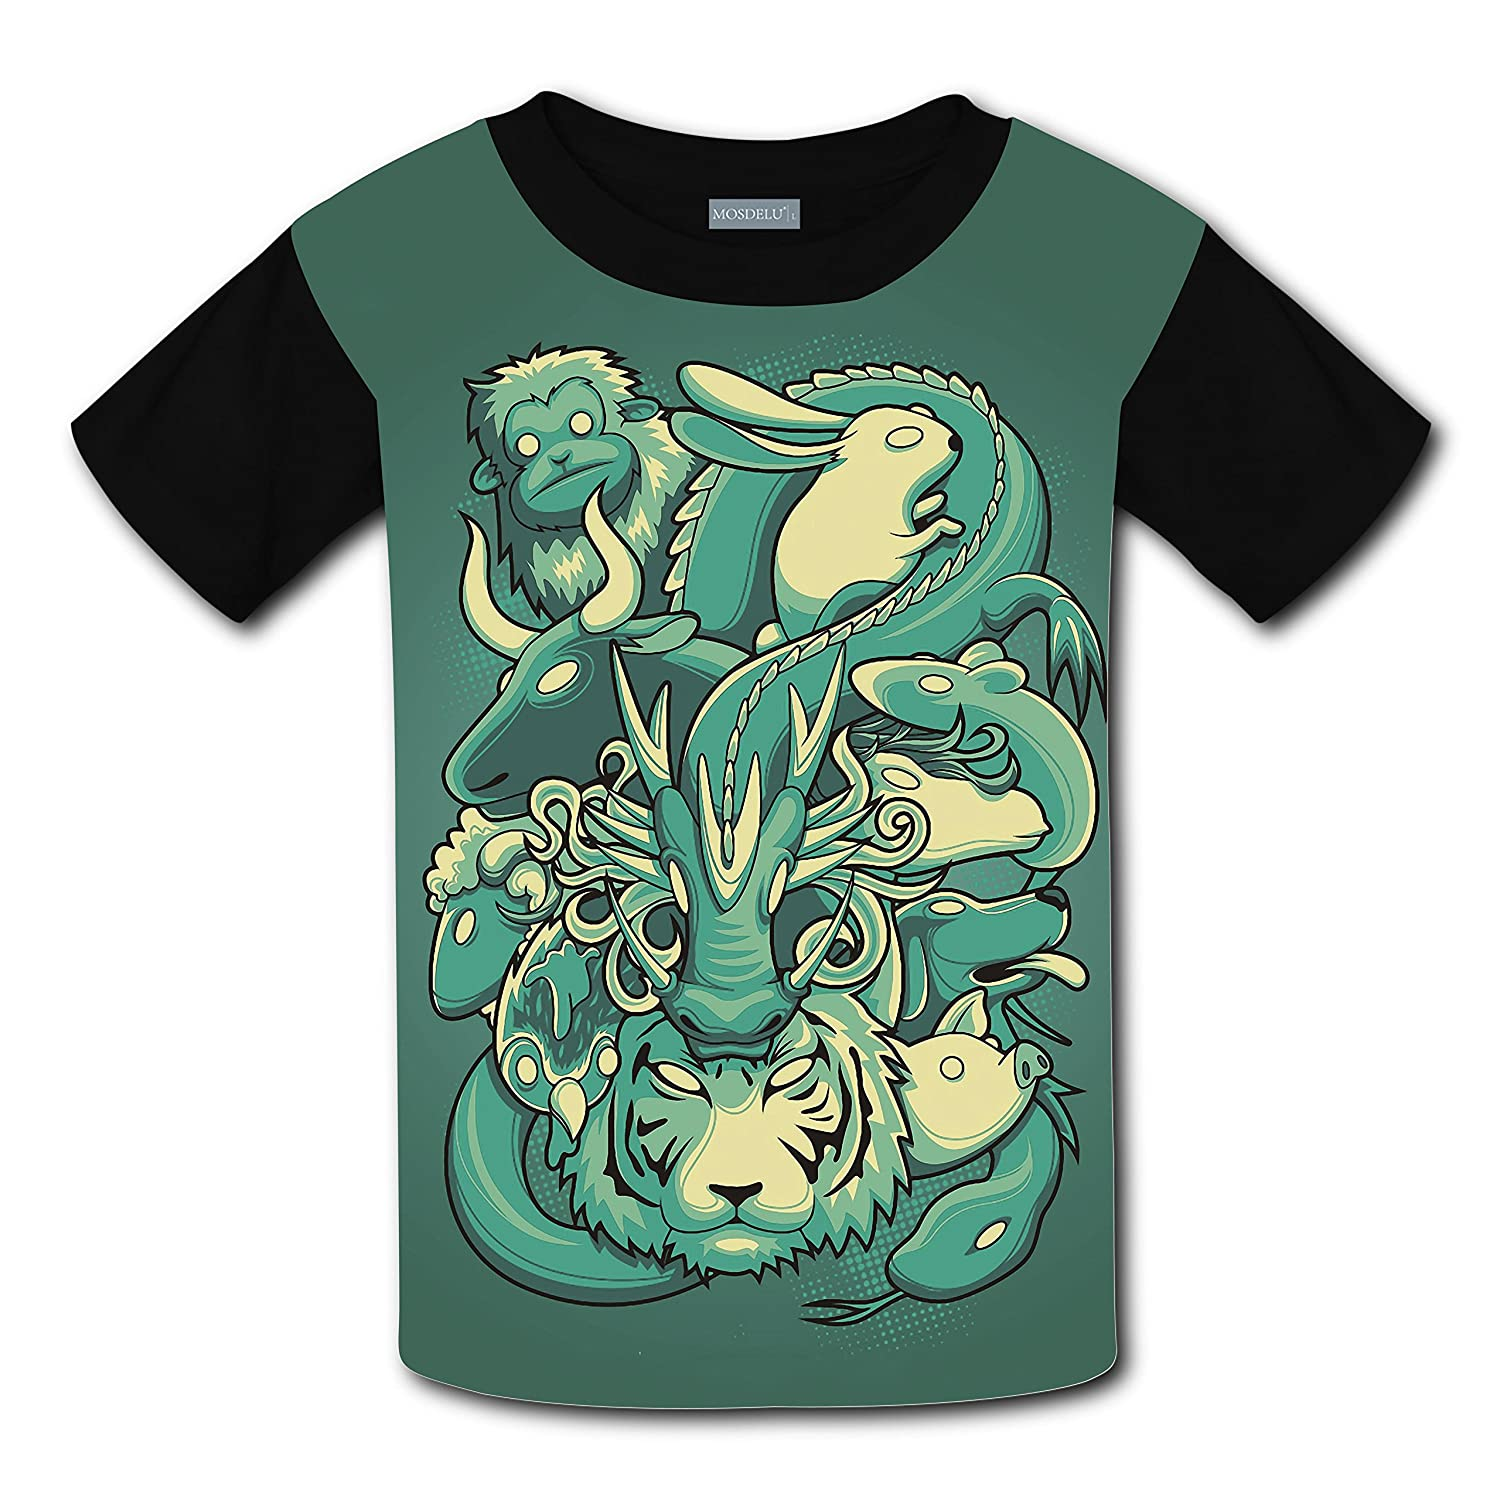 Chinese Zodiac Light Weight T-Shirt 2017 The Latest Version For girlsfree Postage for cheap